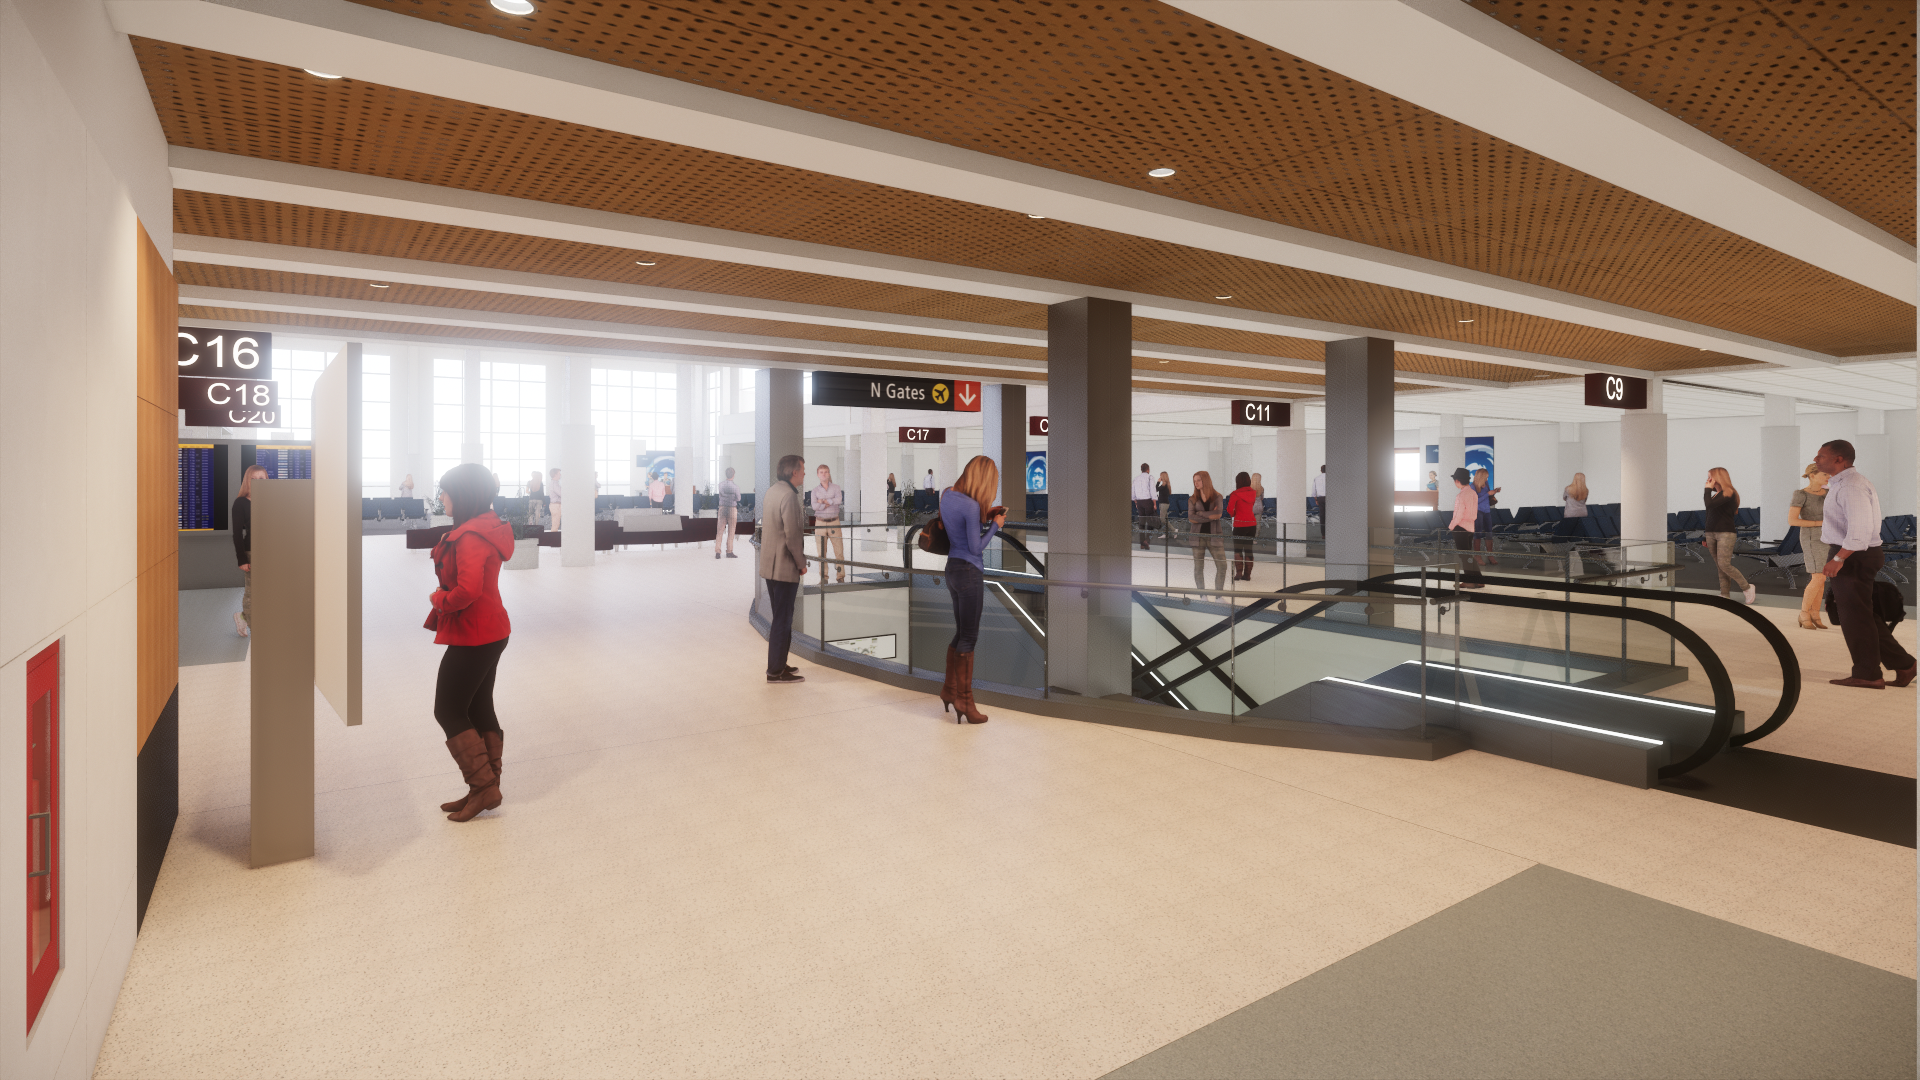 Rendering of project at Concourse C level from the Southwest corner.